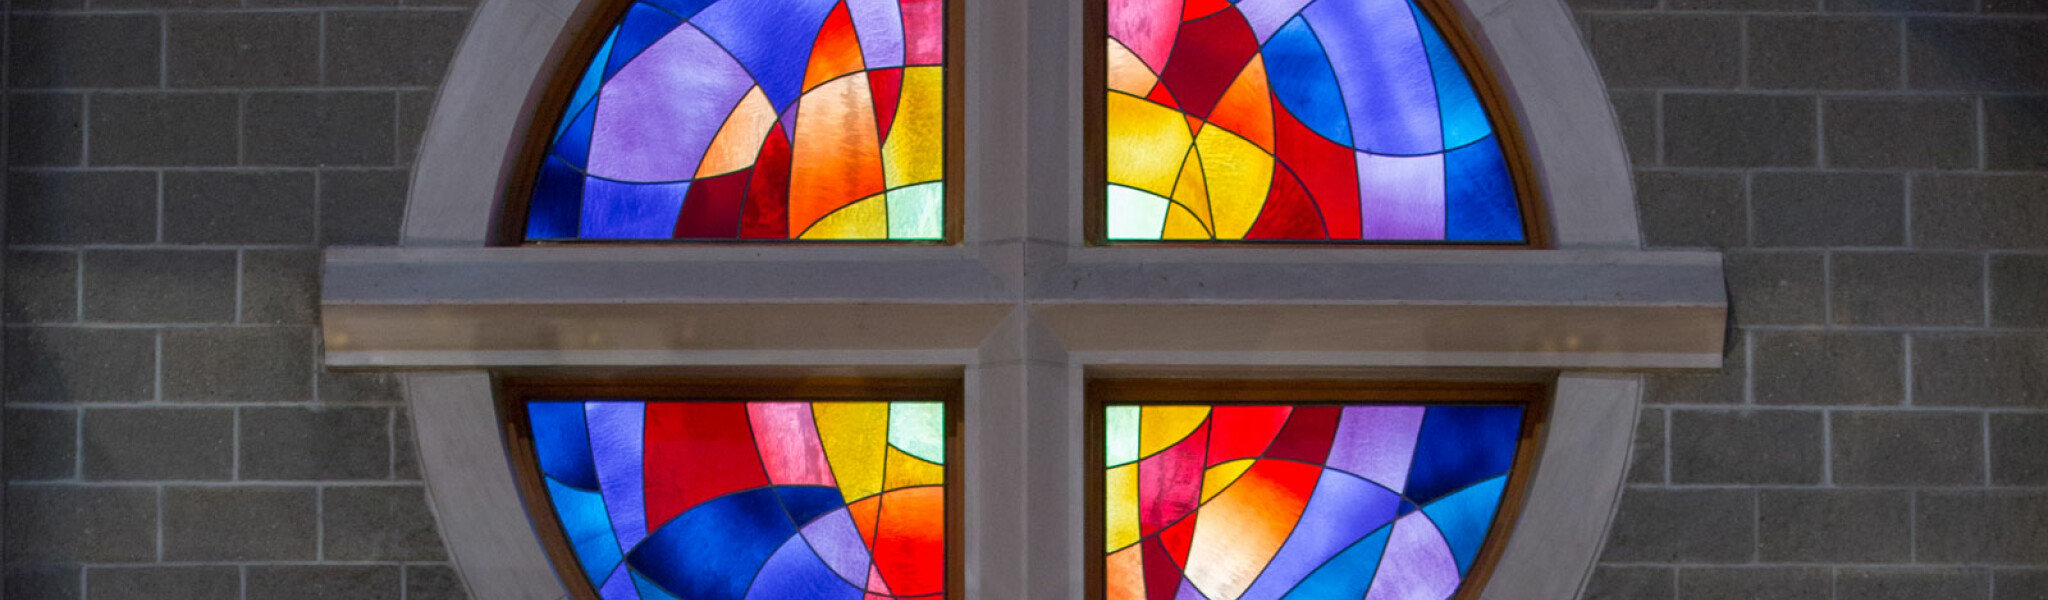 Locations | Cornerstone Lutheran Church | Cornerstone Lutheran Church